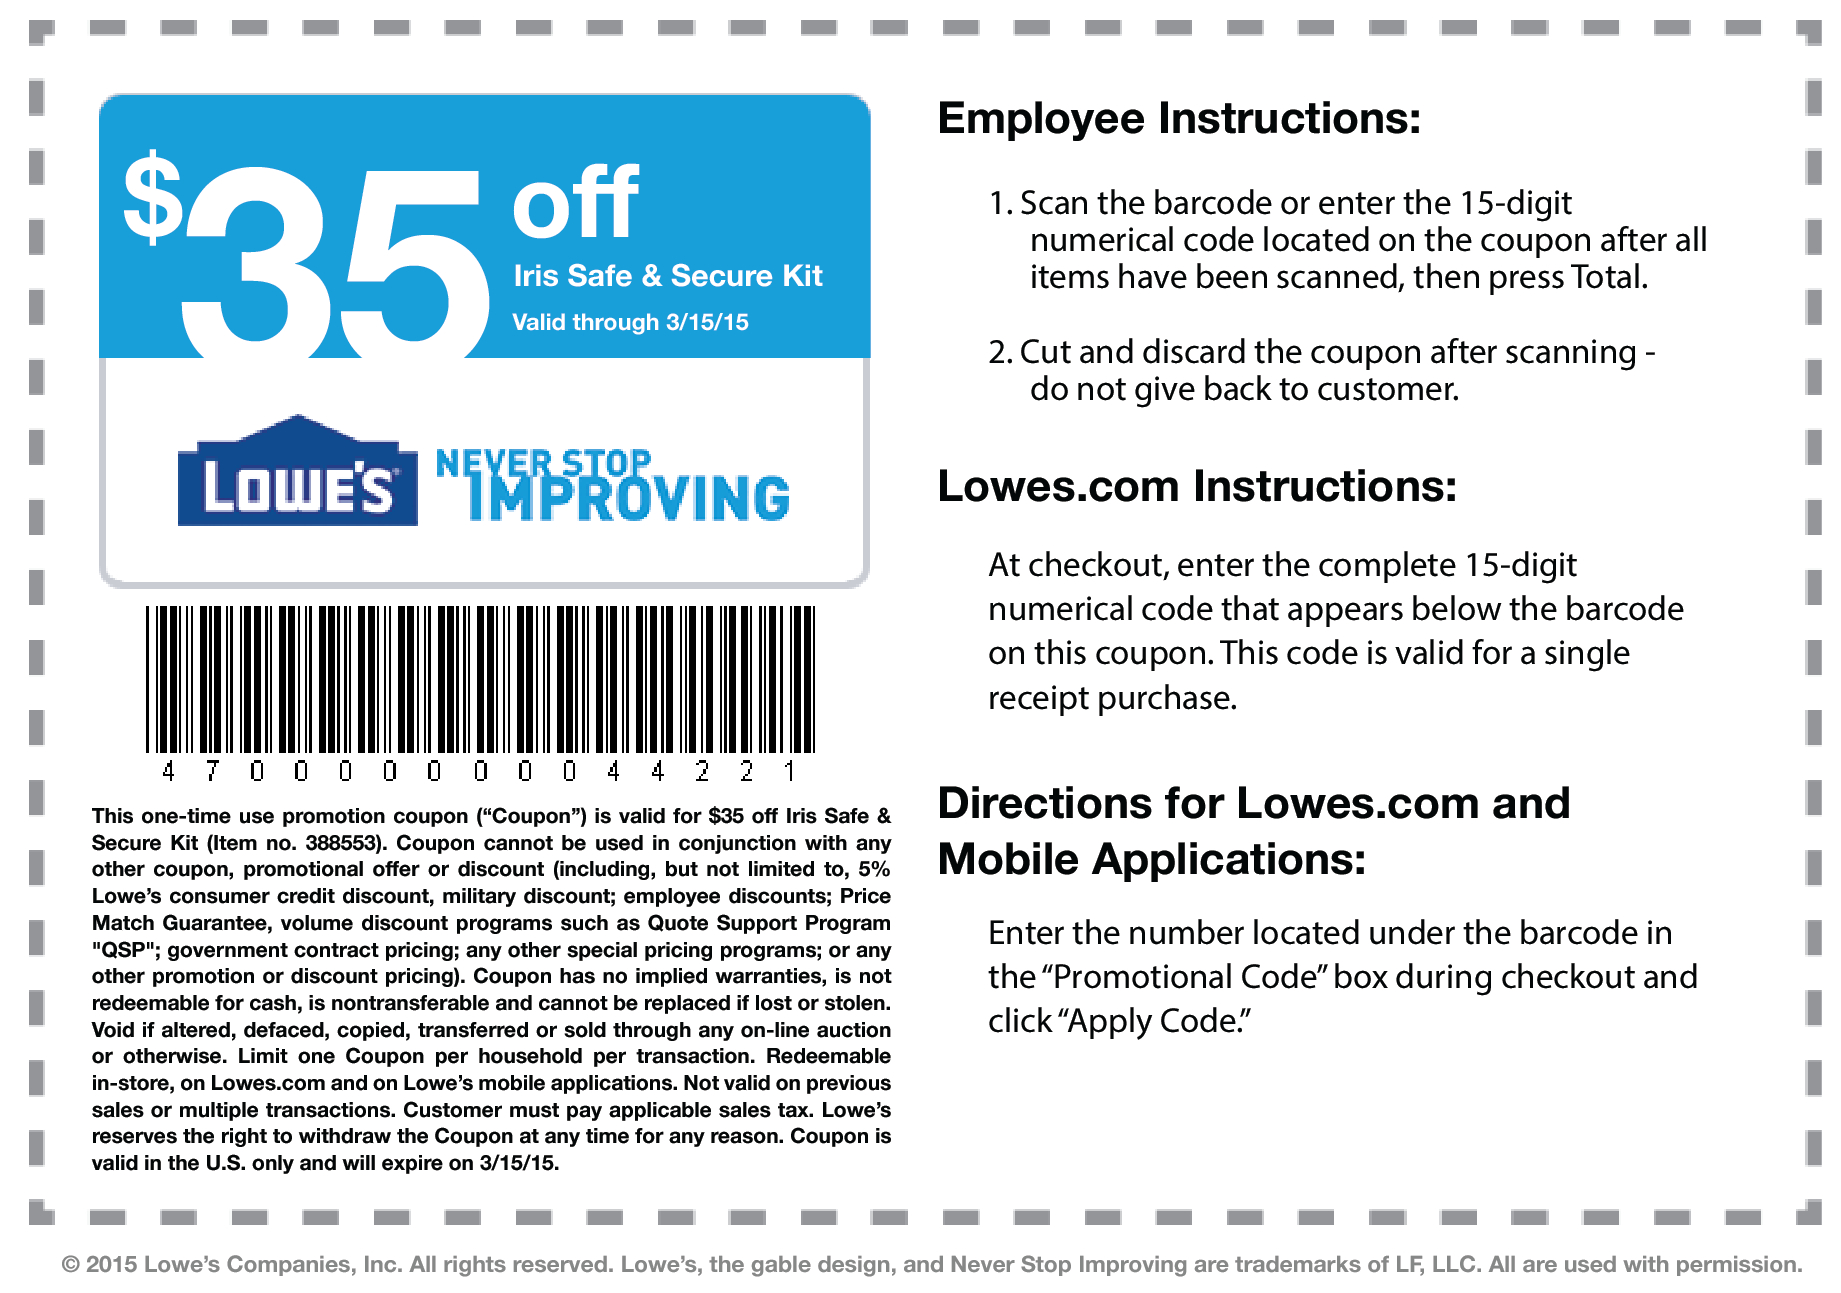 Lowes Coupons – Download & Print - Lowes Coupon Printable Free